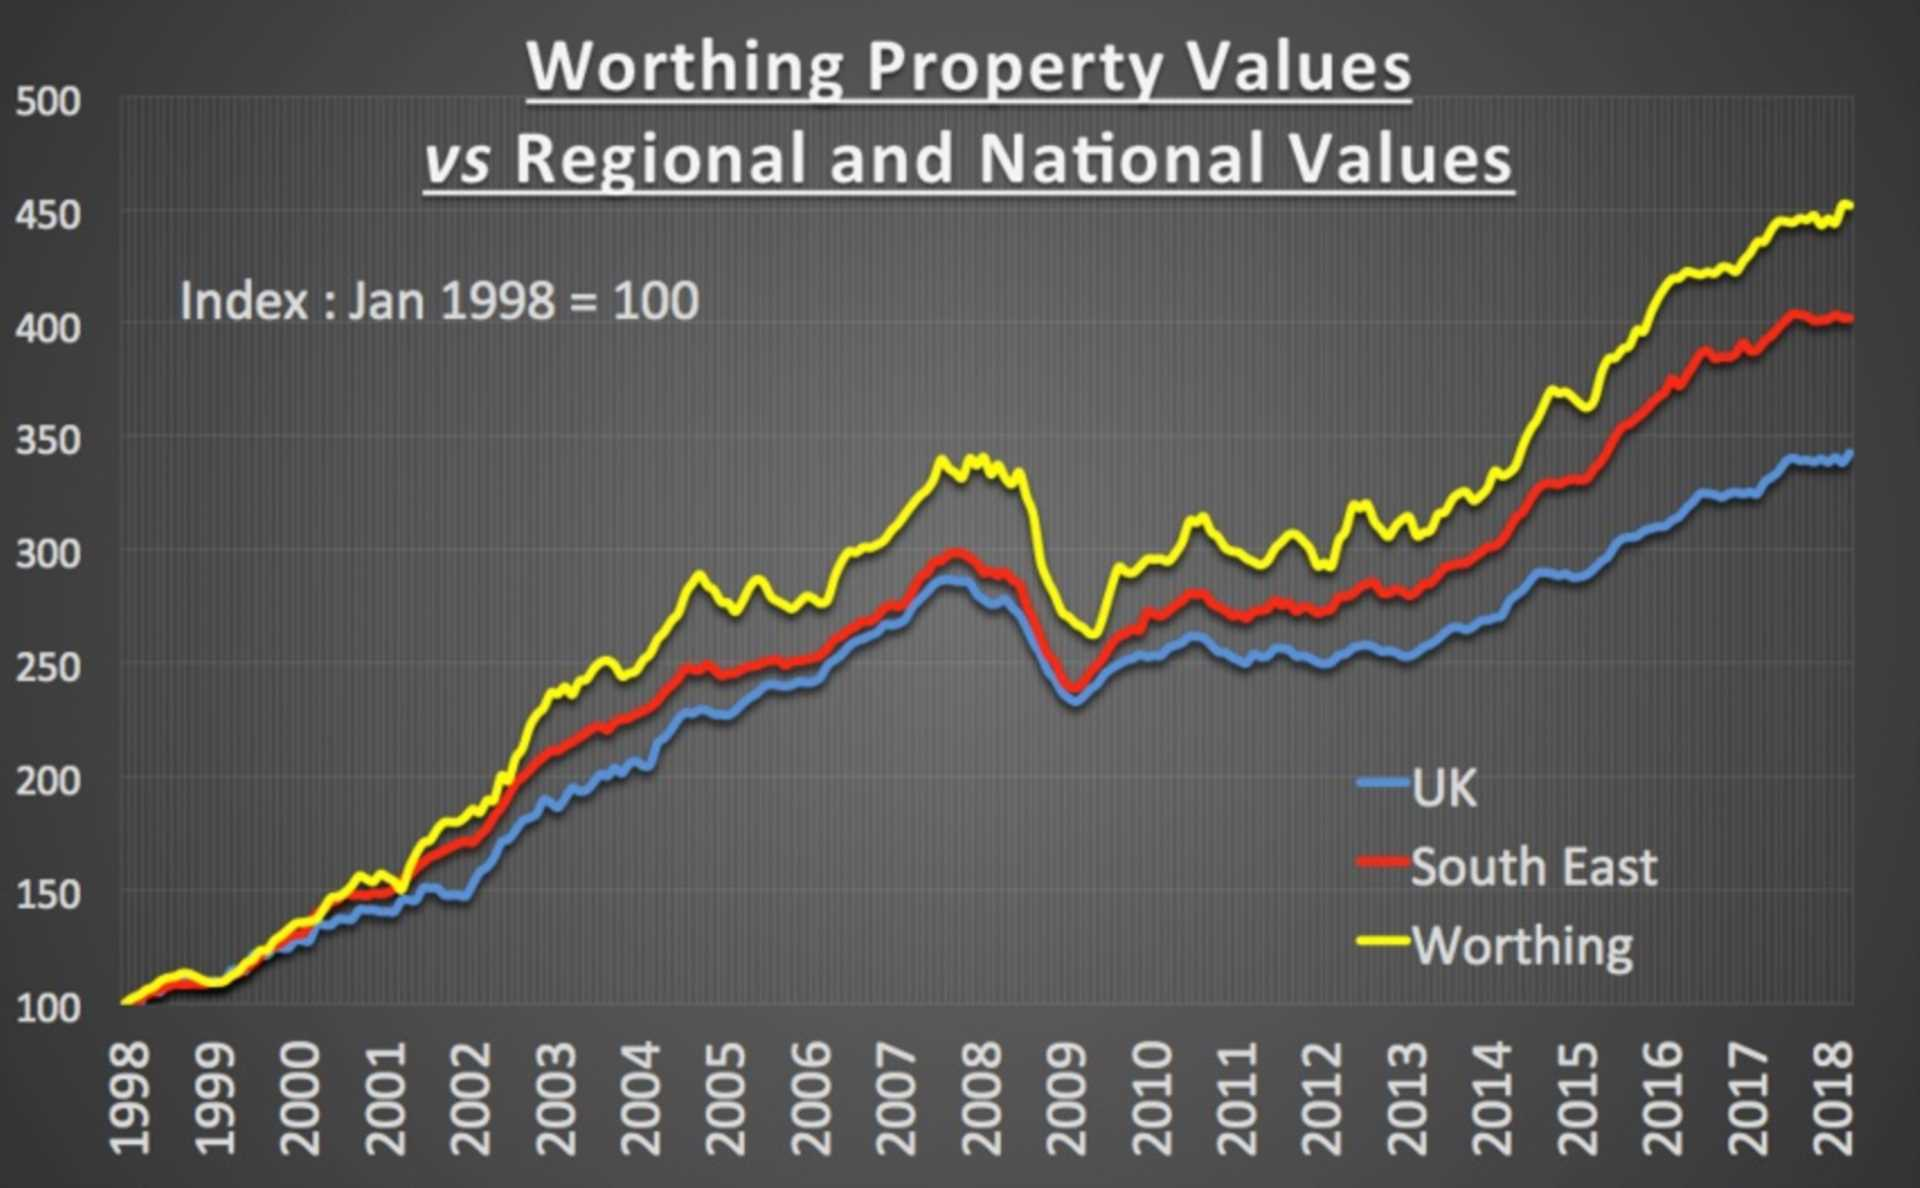 Property values in Worthing are 351.85% higher than the summer of 1998